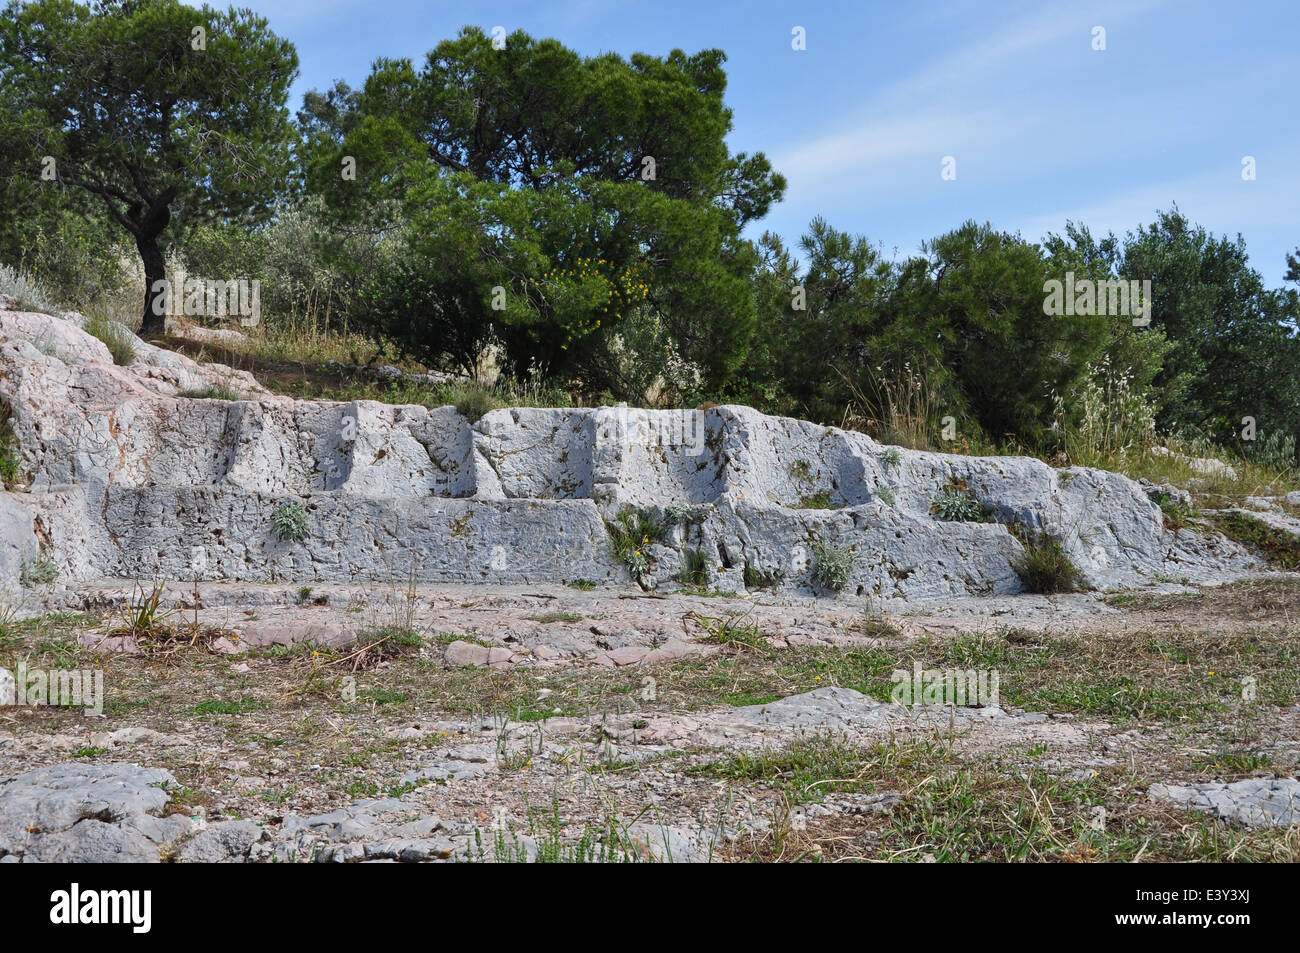 Eptathronon seven thrones plateau ancient greek ruins on Philopappos hill. Rock hewn seats. - Stock Image